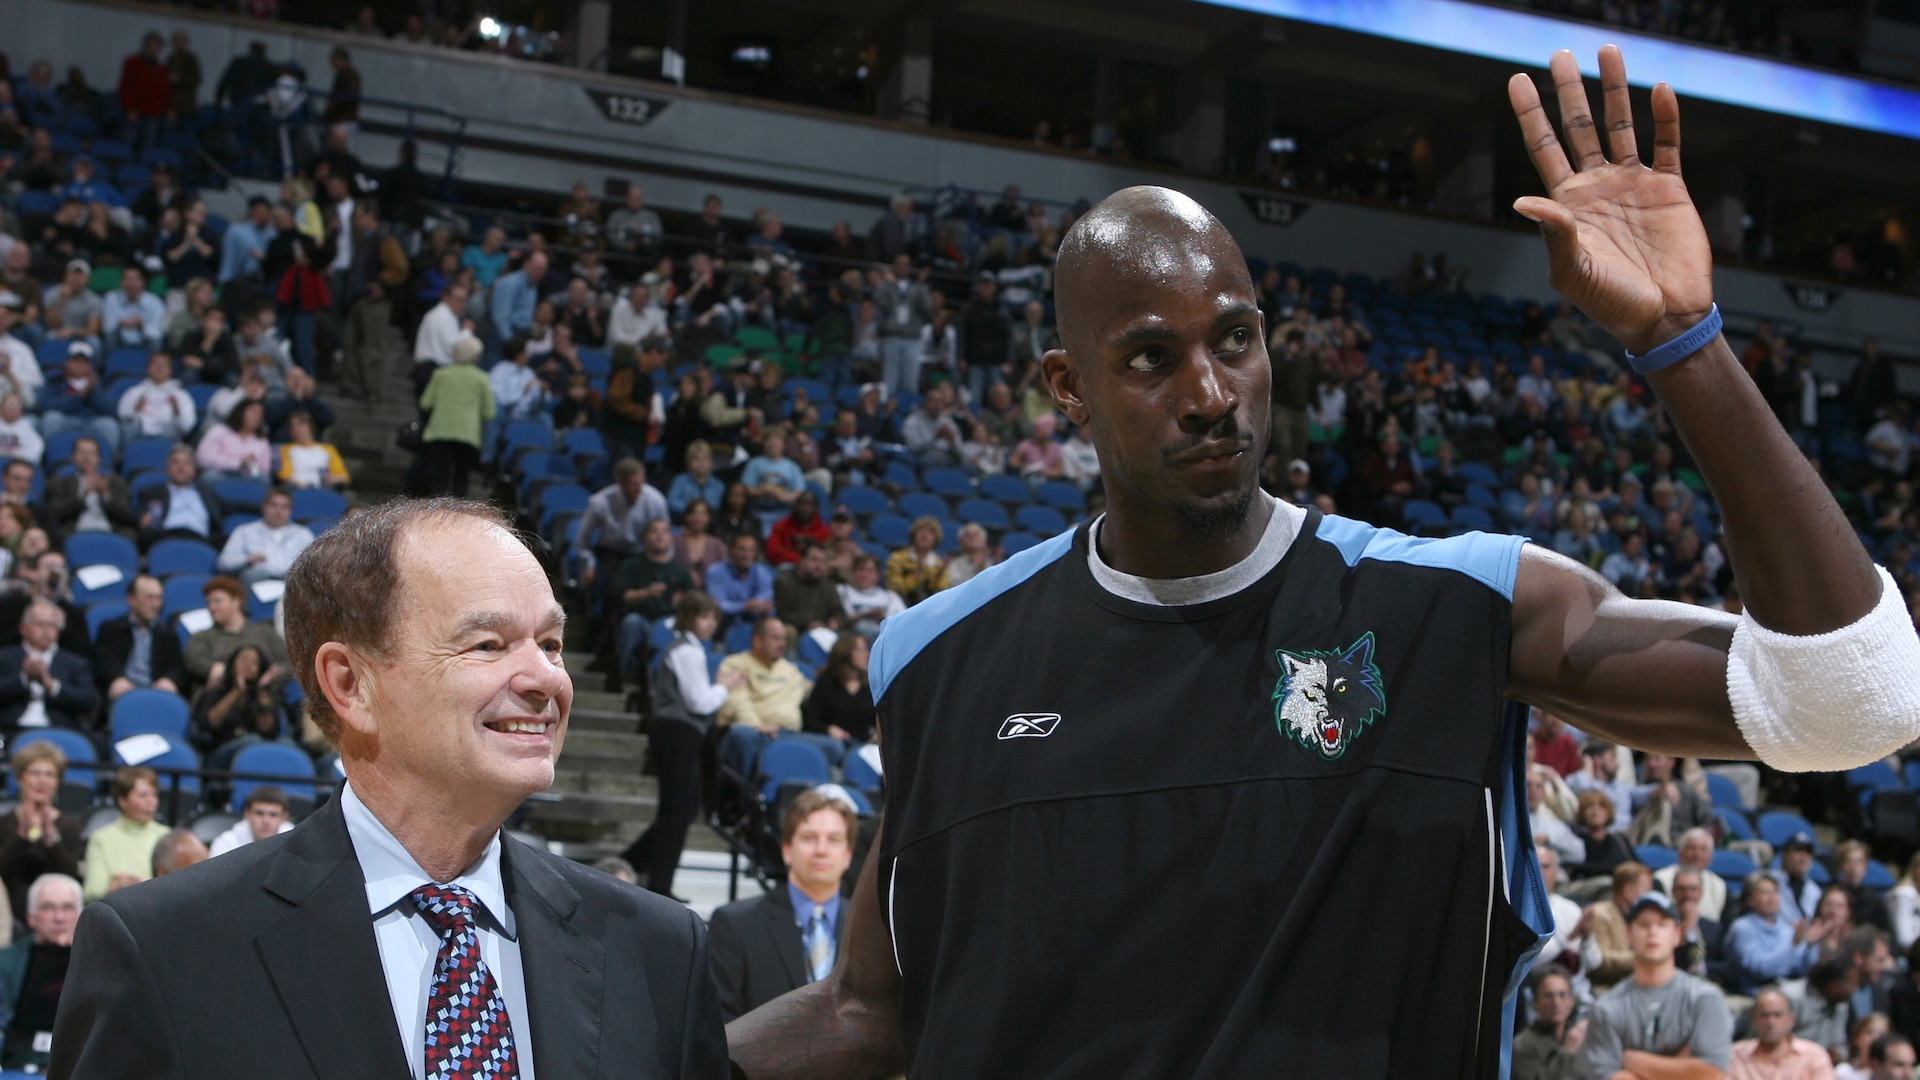 Timberwolves owner listening to offers, Kevin Garnett hoping to buy